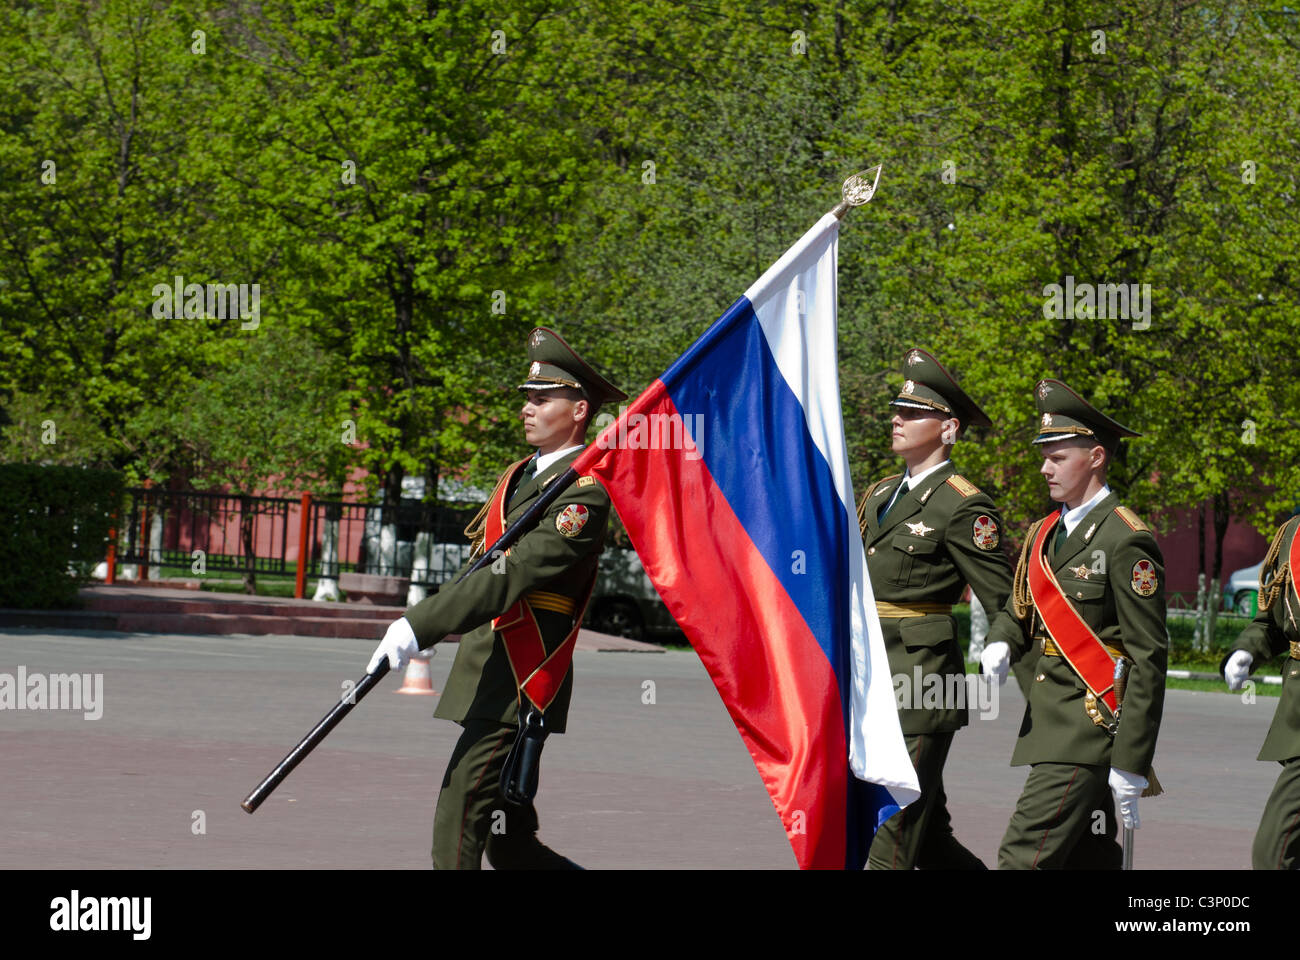 Russian soldiers with a national flag - Stock Image